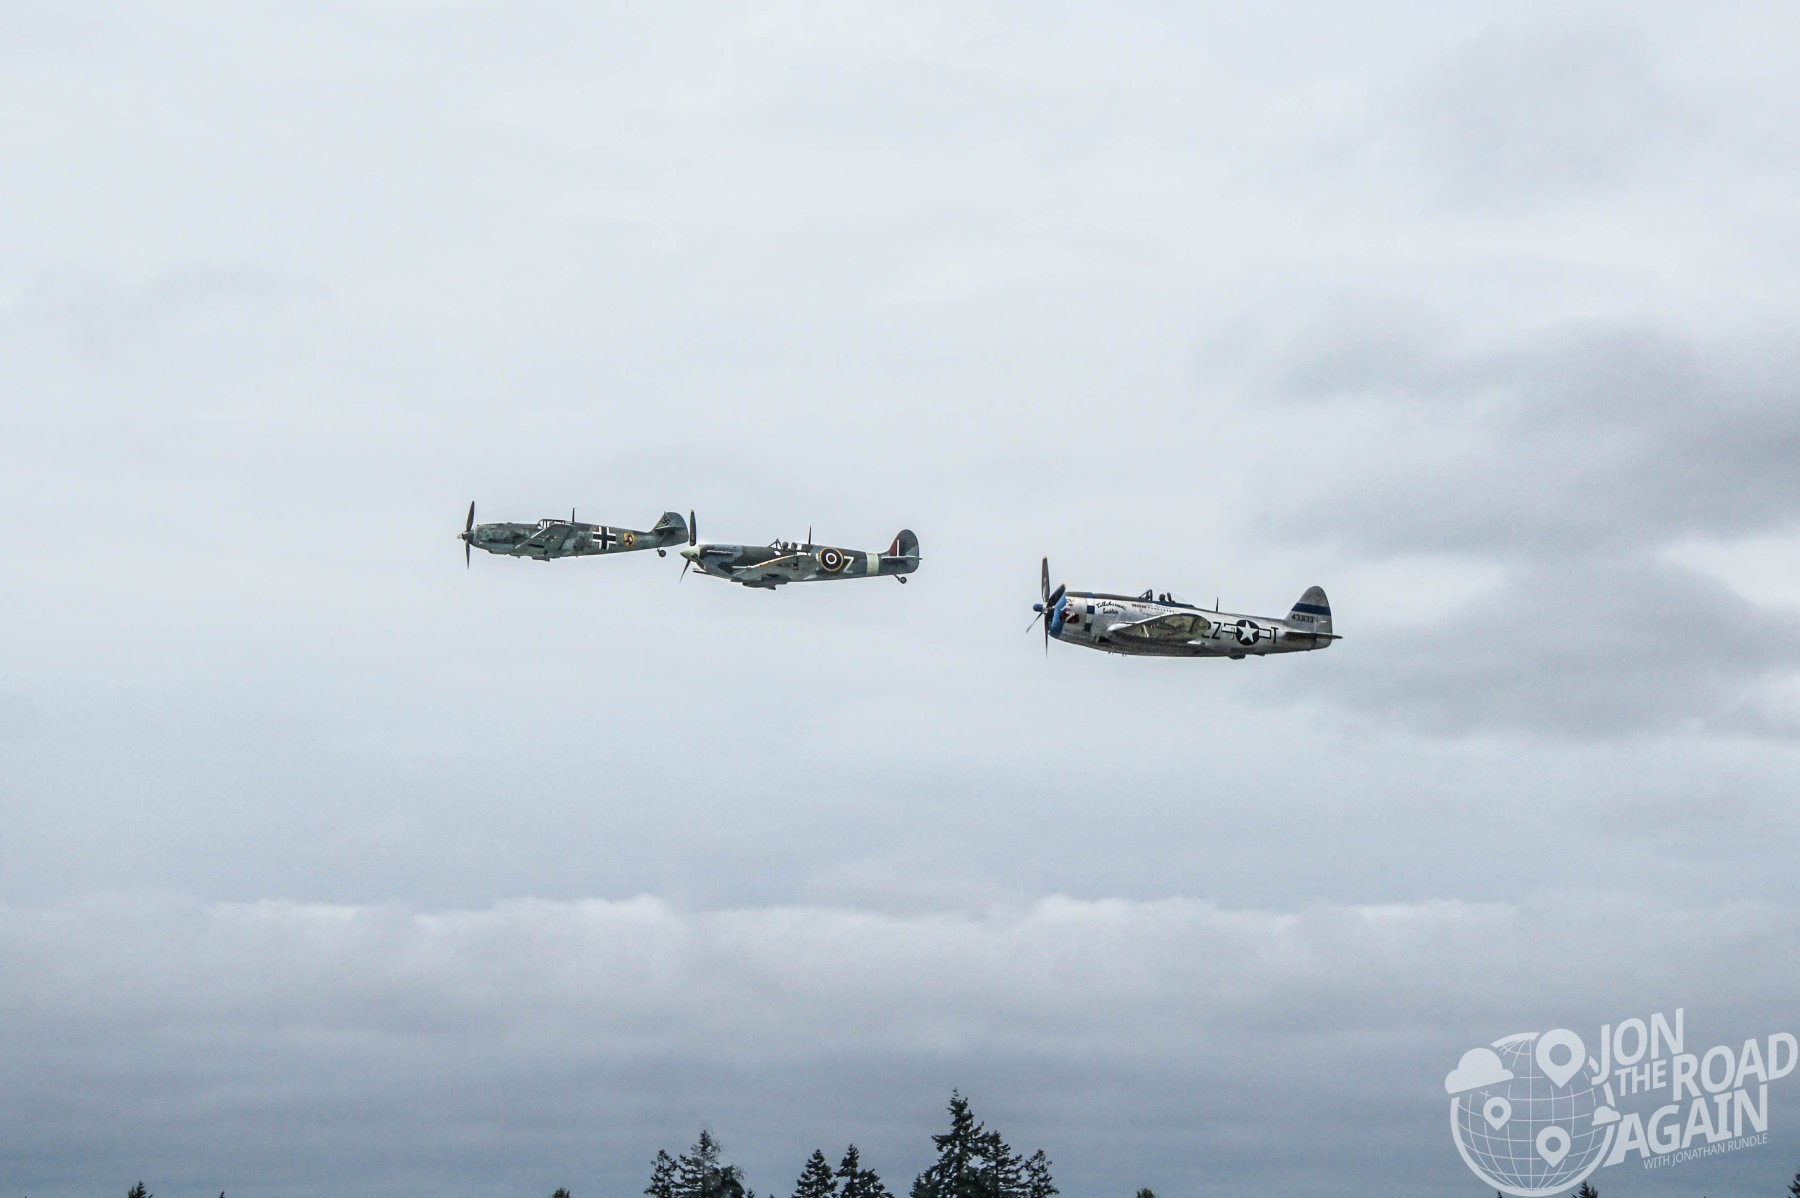 Aircraft from the Battle of Britain